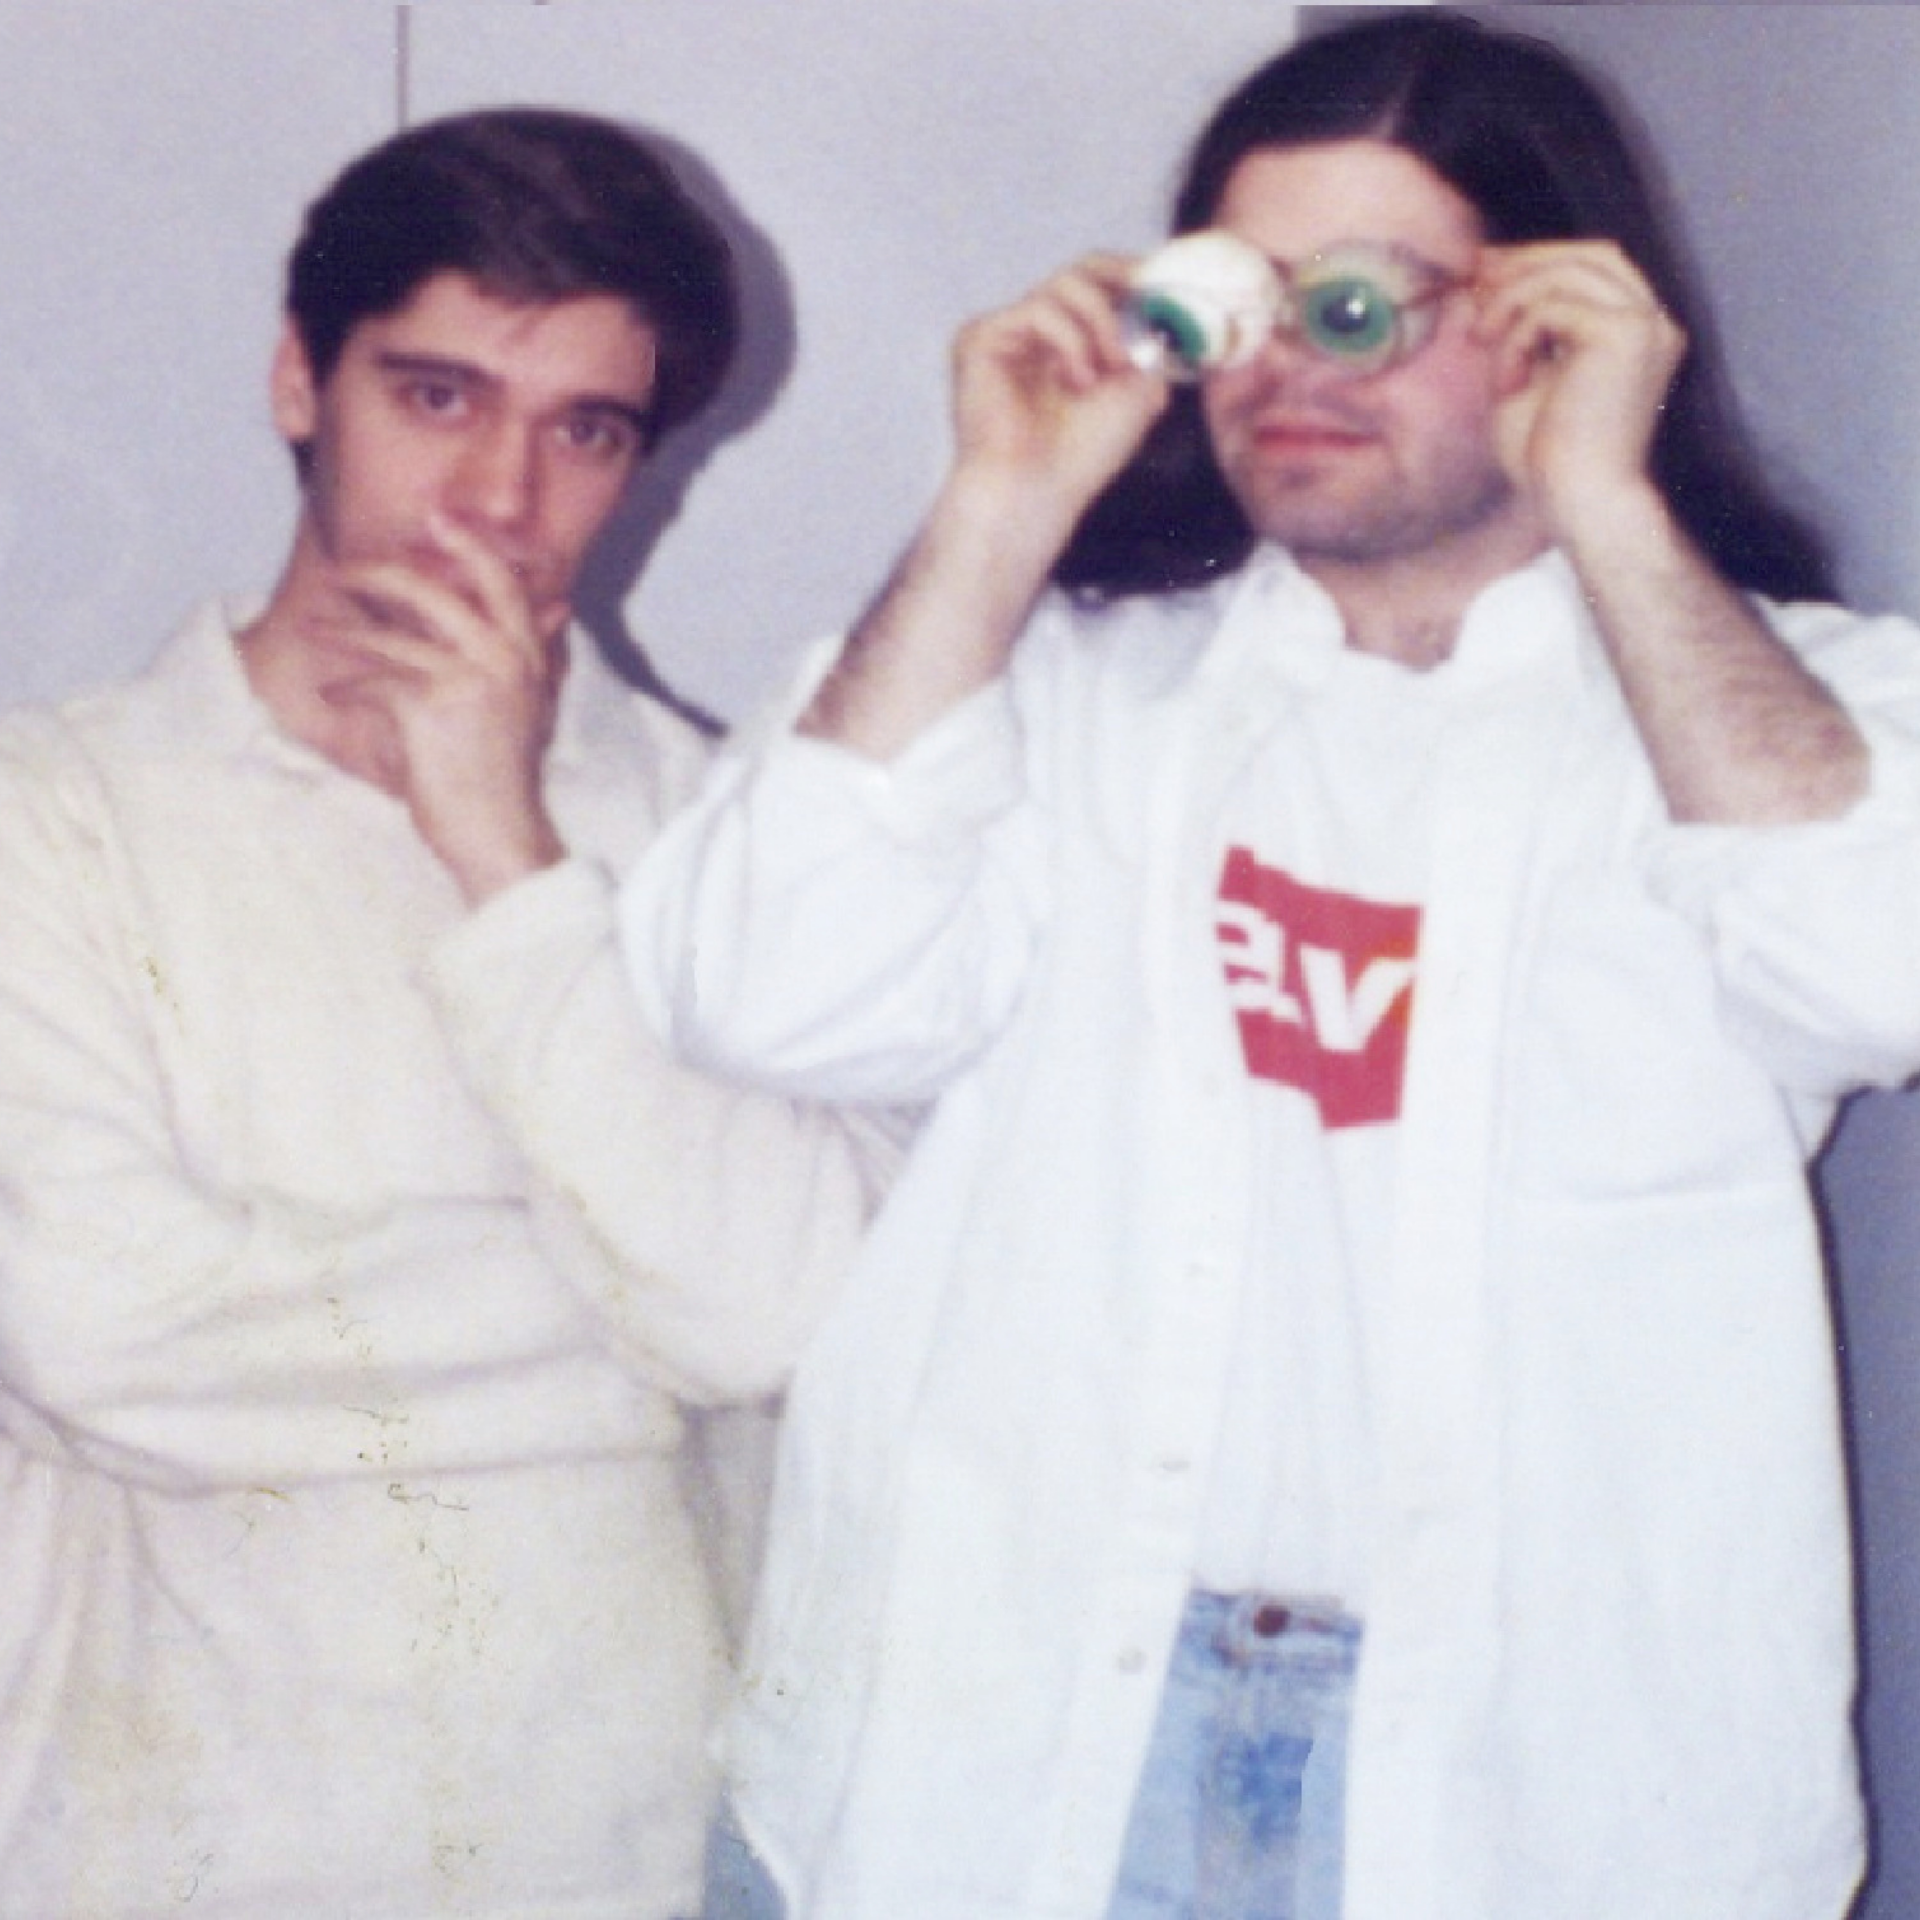 a photo of two persons playing funny poses. person on the left is wearing a white sweater and posing on a thinking pose while person on the right is wearing a white shirt that is open and wearing googly eyes